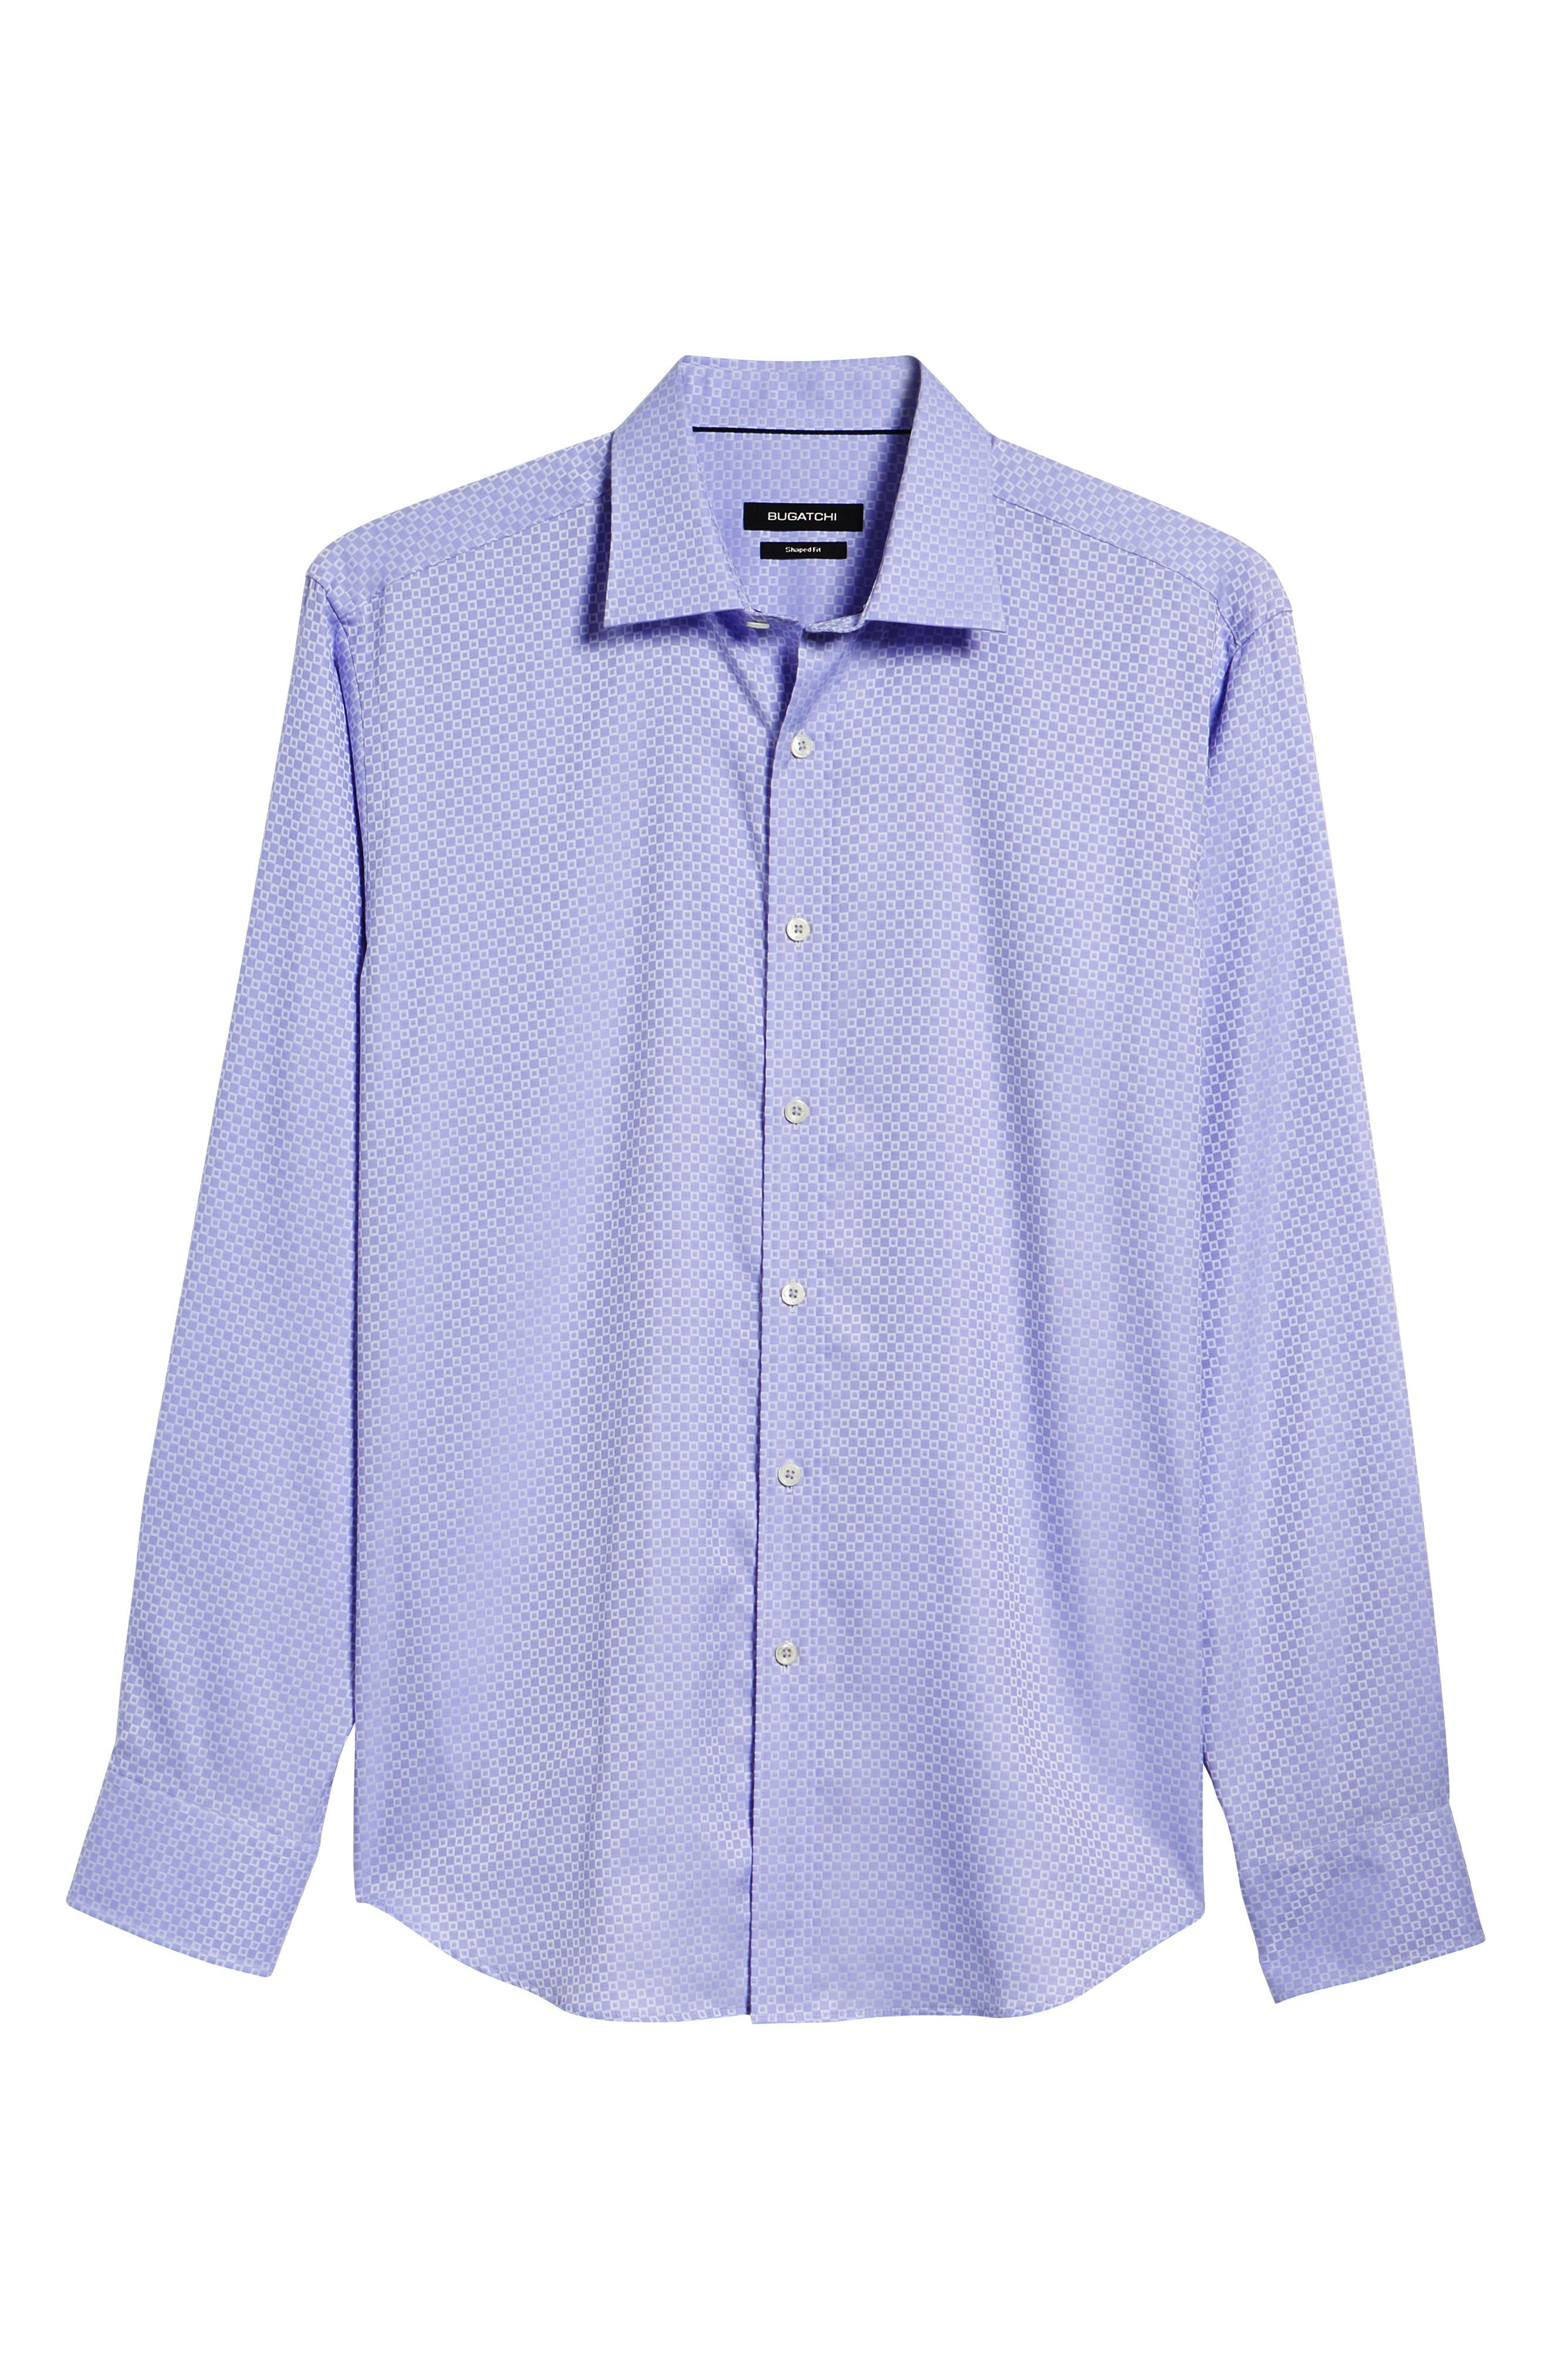 Woven Sport Shirt,                             Alternate thumbnail 6, color,                             Lavender